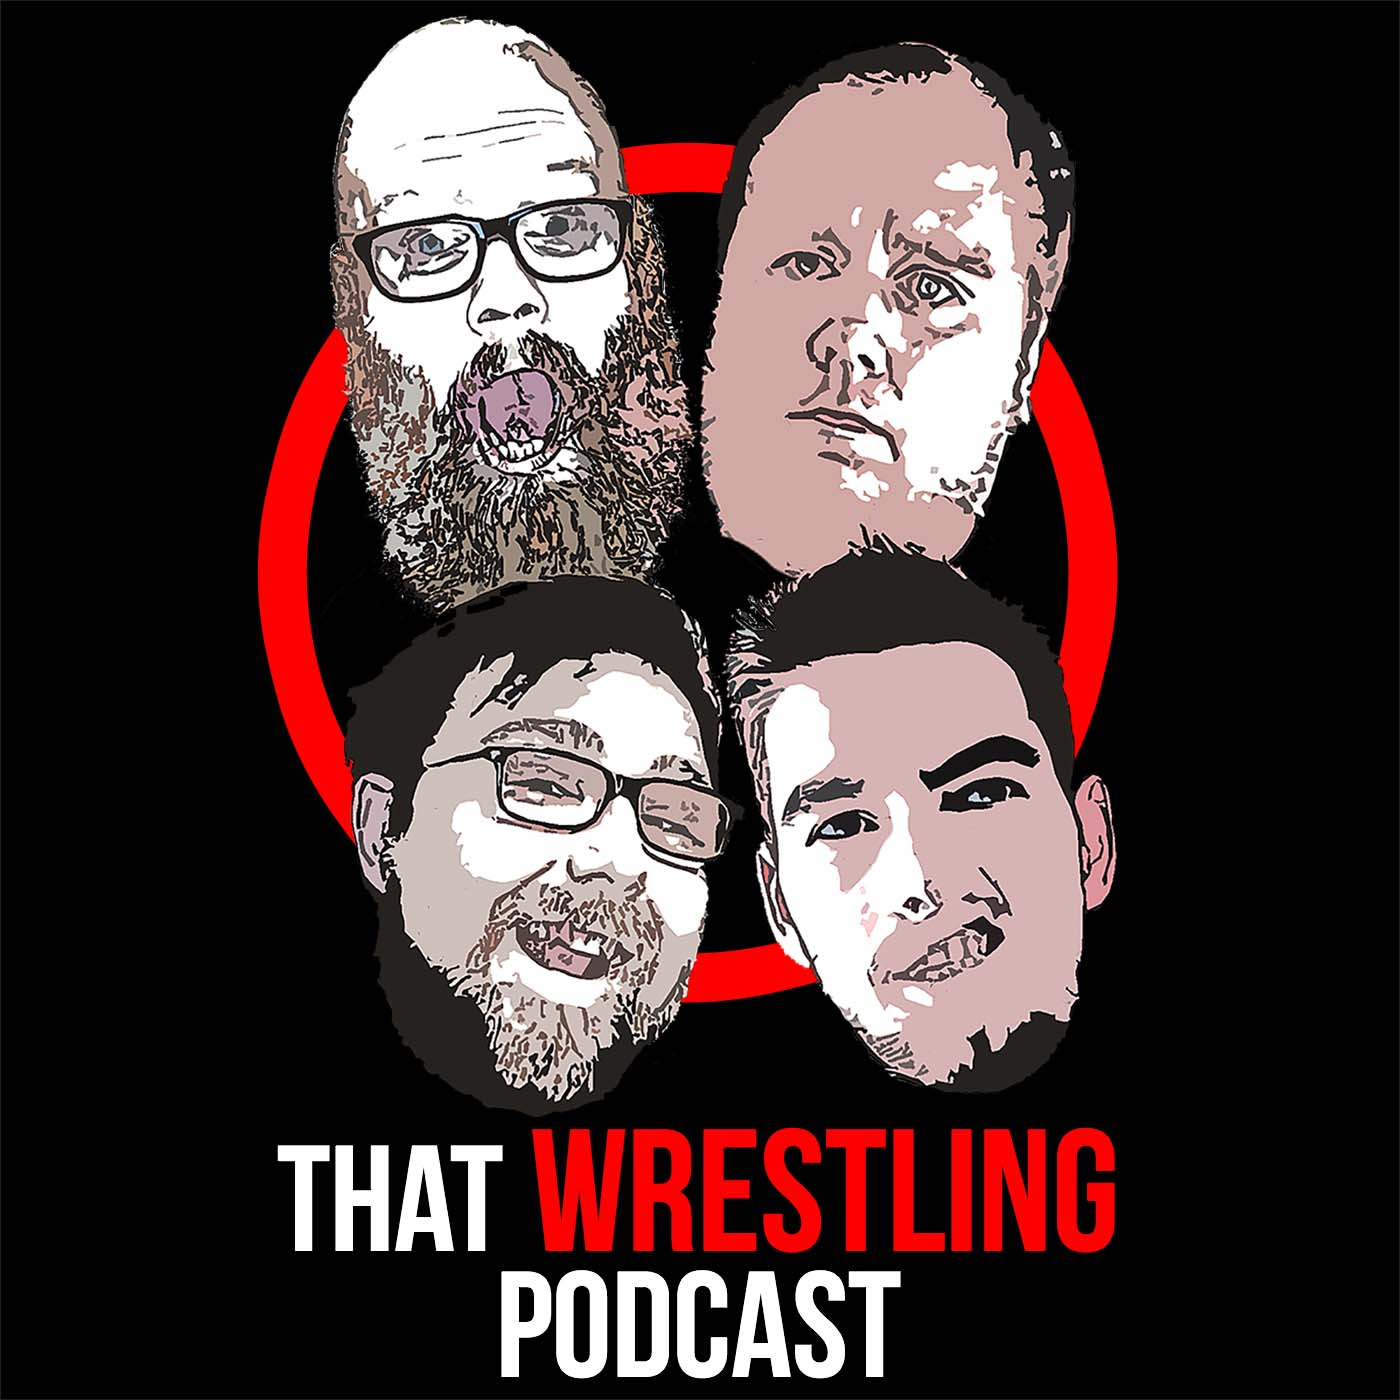 That Wrestling Podcast: Pro Wrestling Radio | Interviews | Reviews | Podcast | Discussion